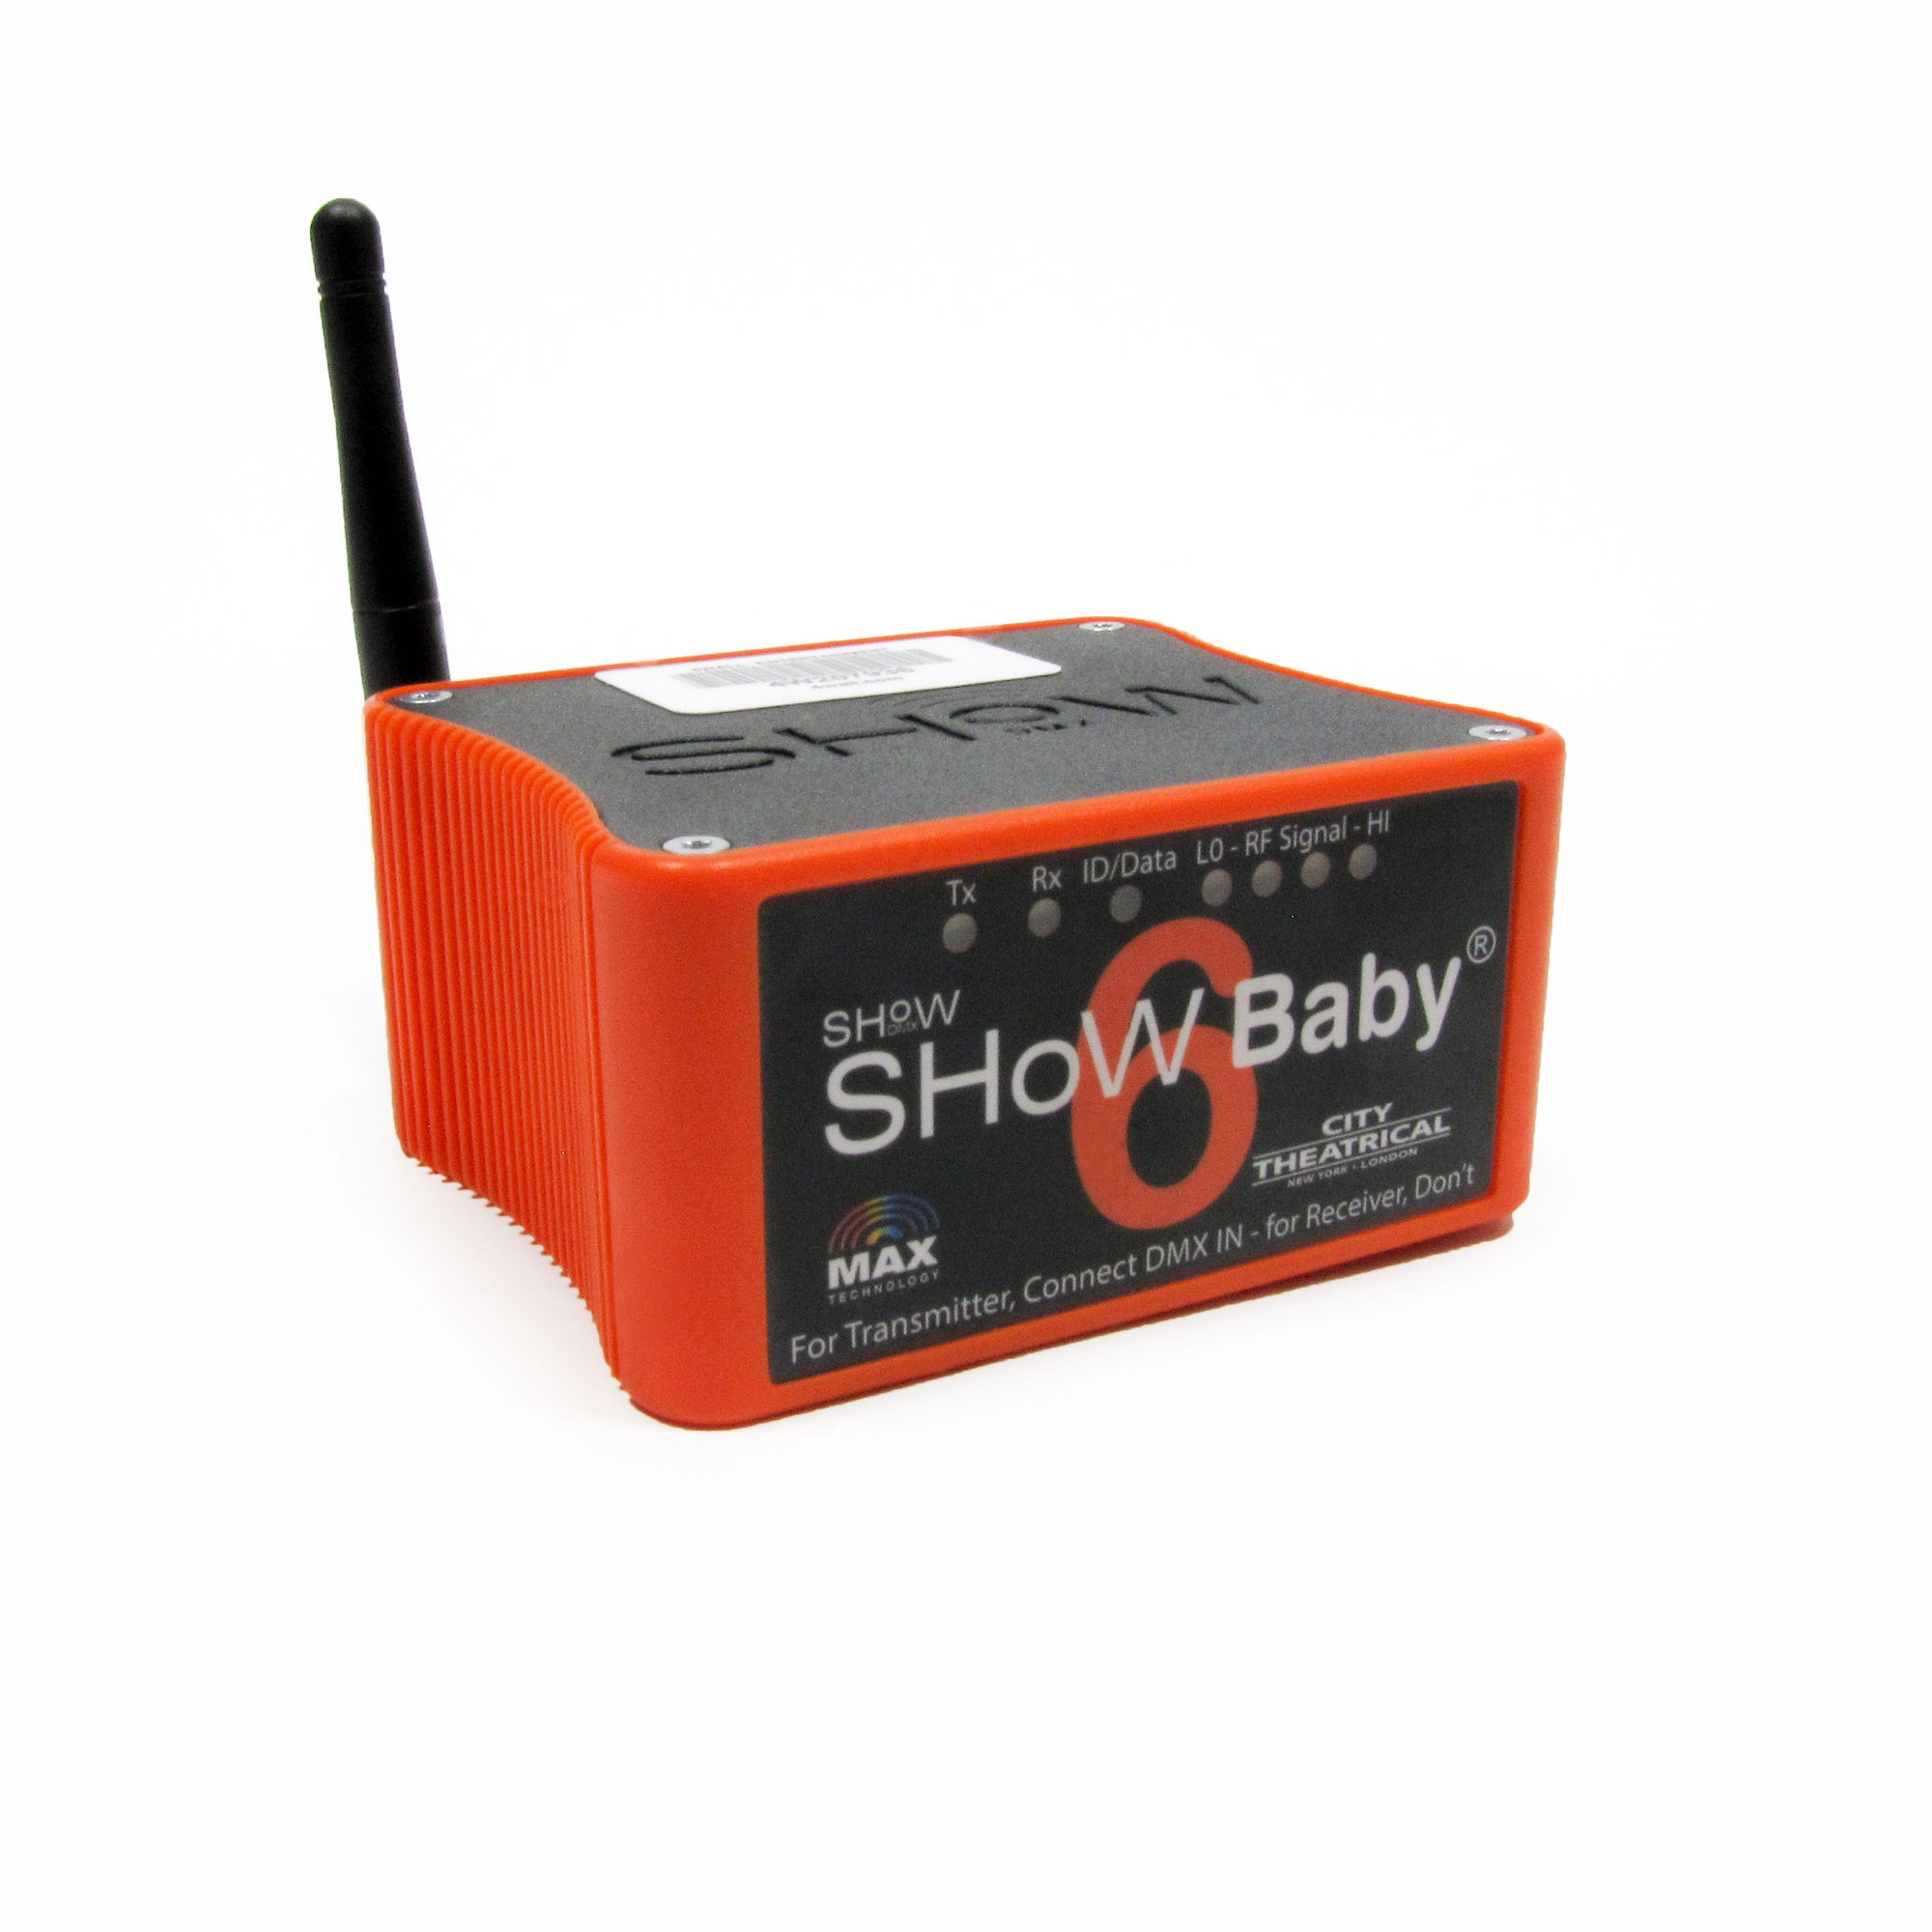 City Theatrical SHoW Baby 6 Transceiver